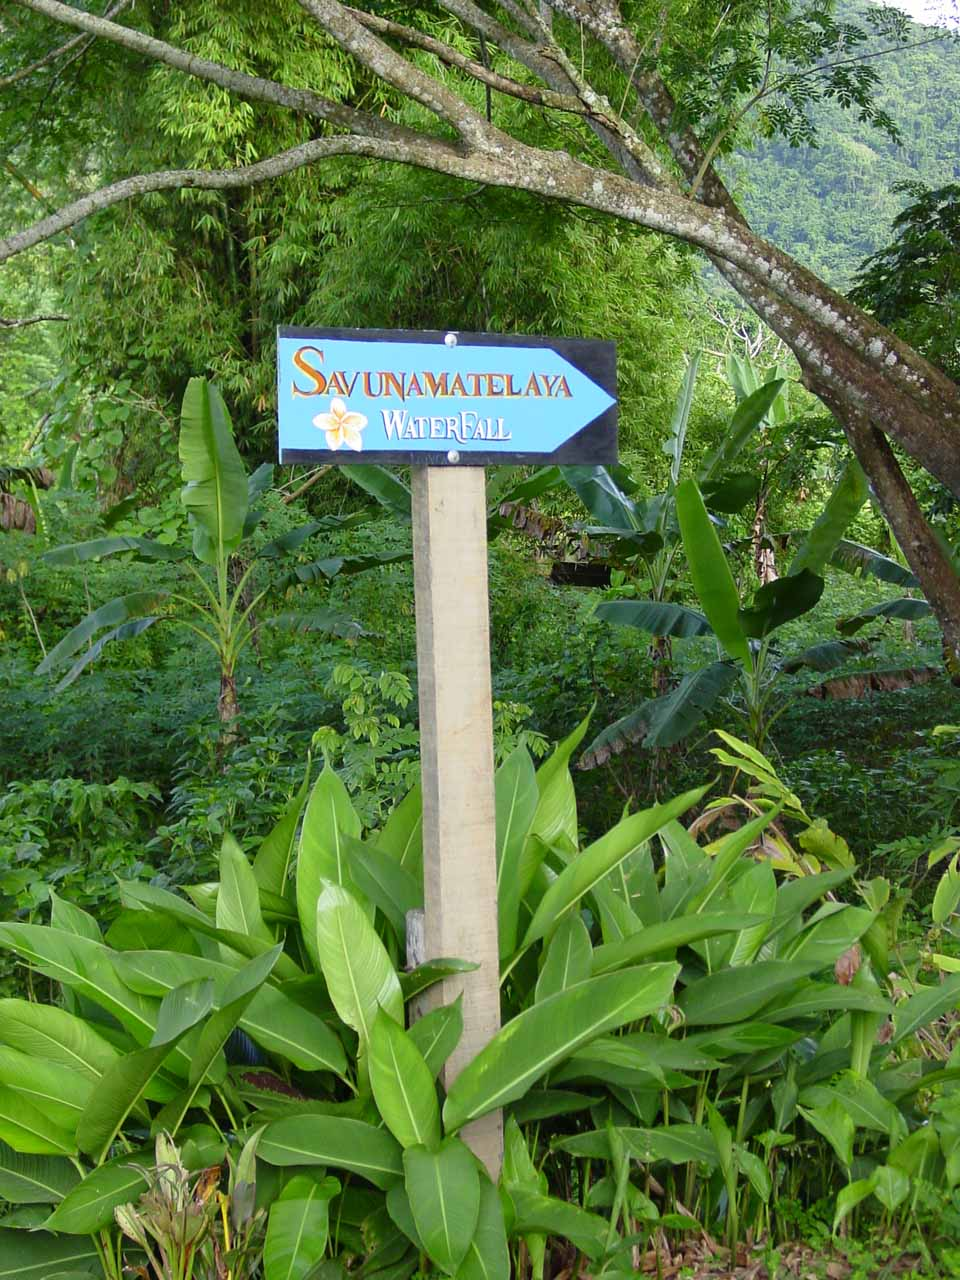 The Savunamatelaya Waterfall sign